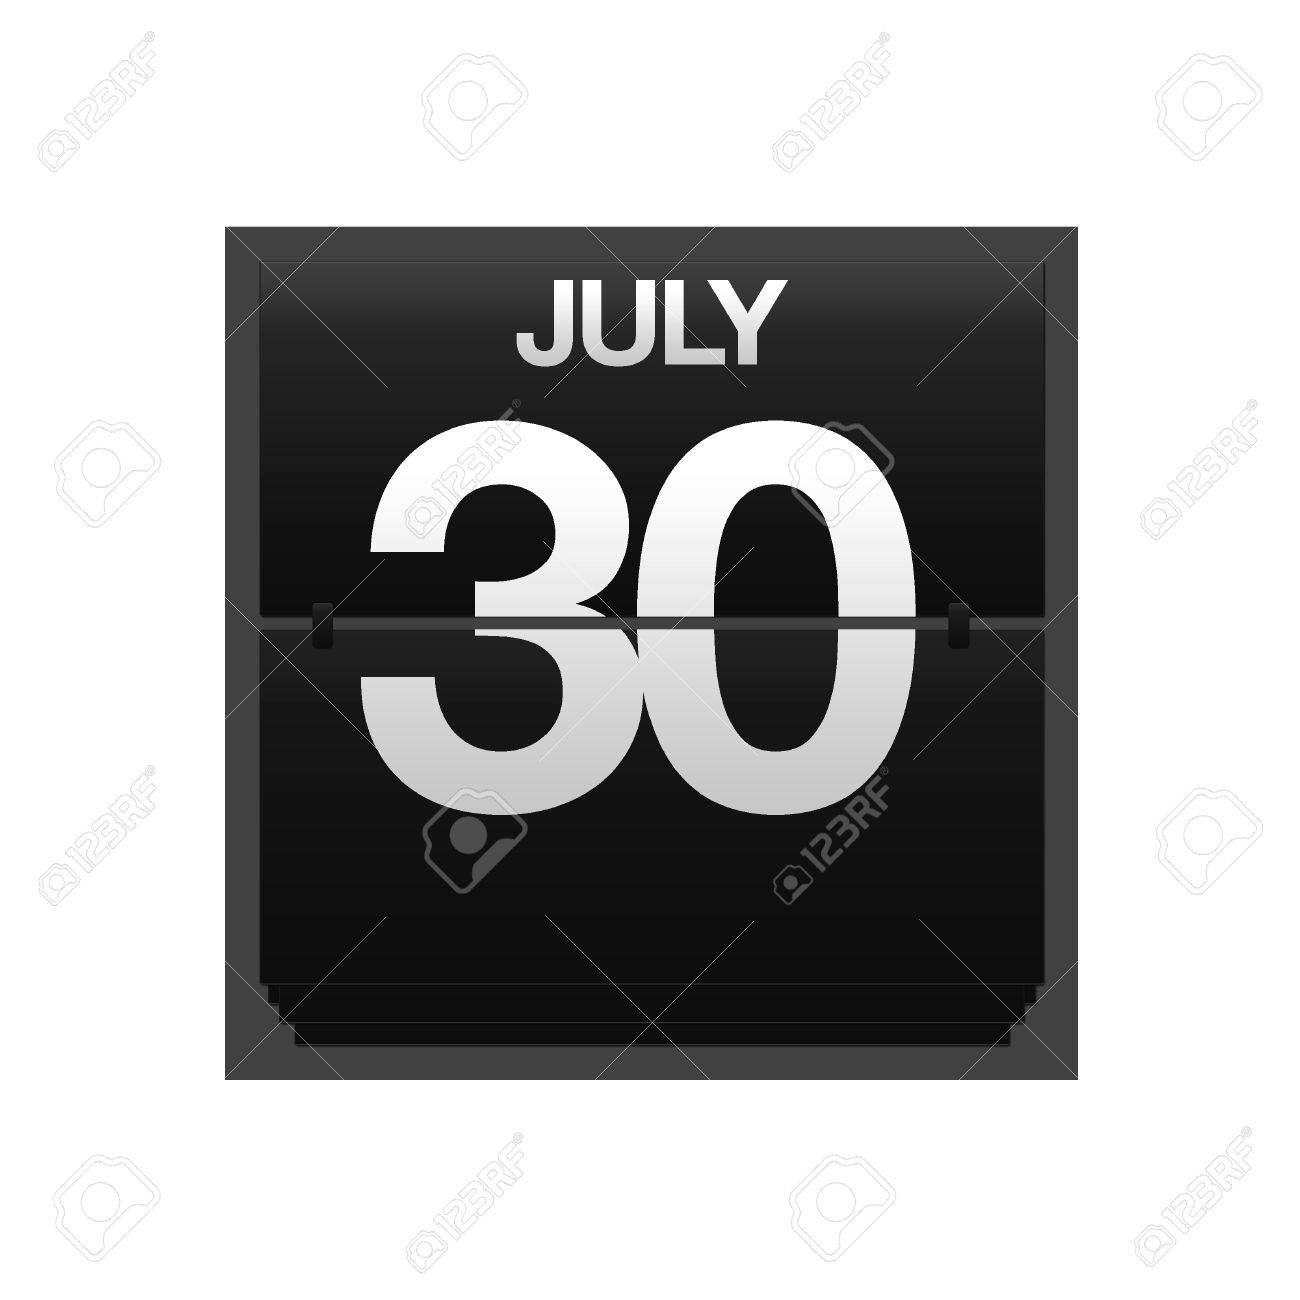 Illustration with a counter calendar july 30 Stock Photo - 15667617